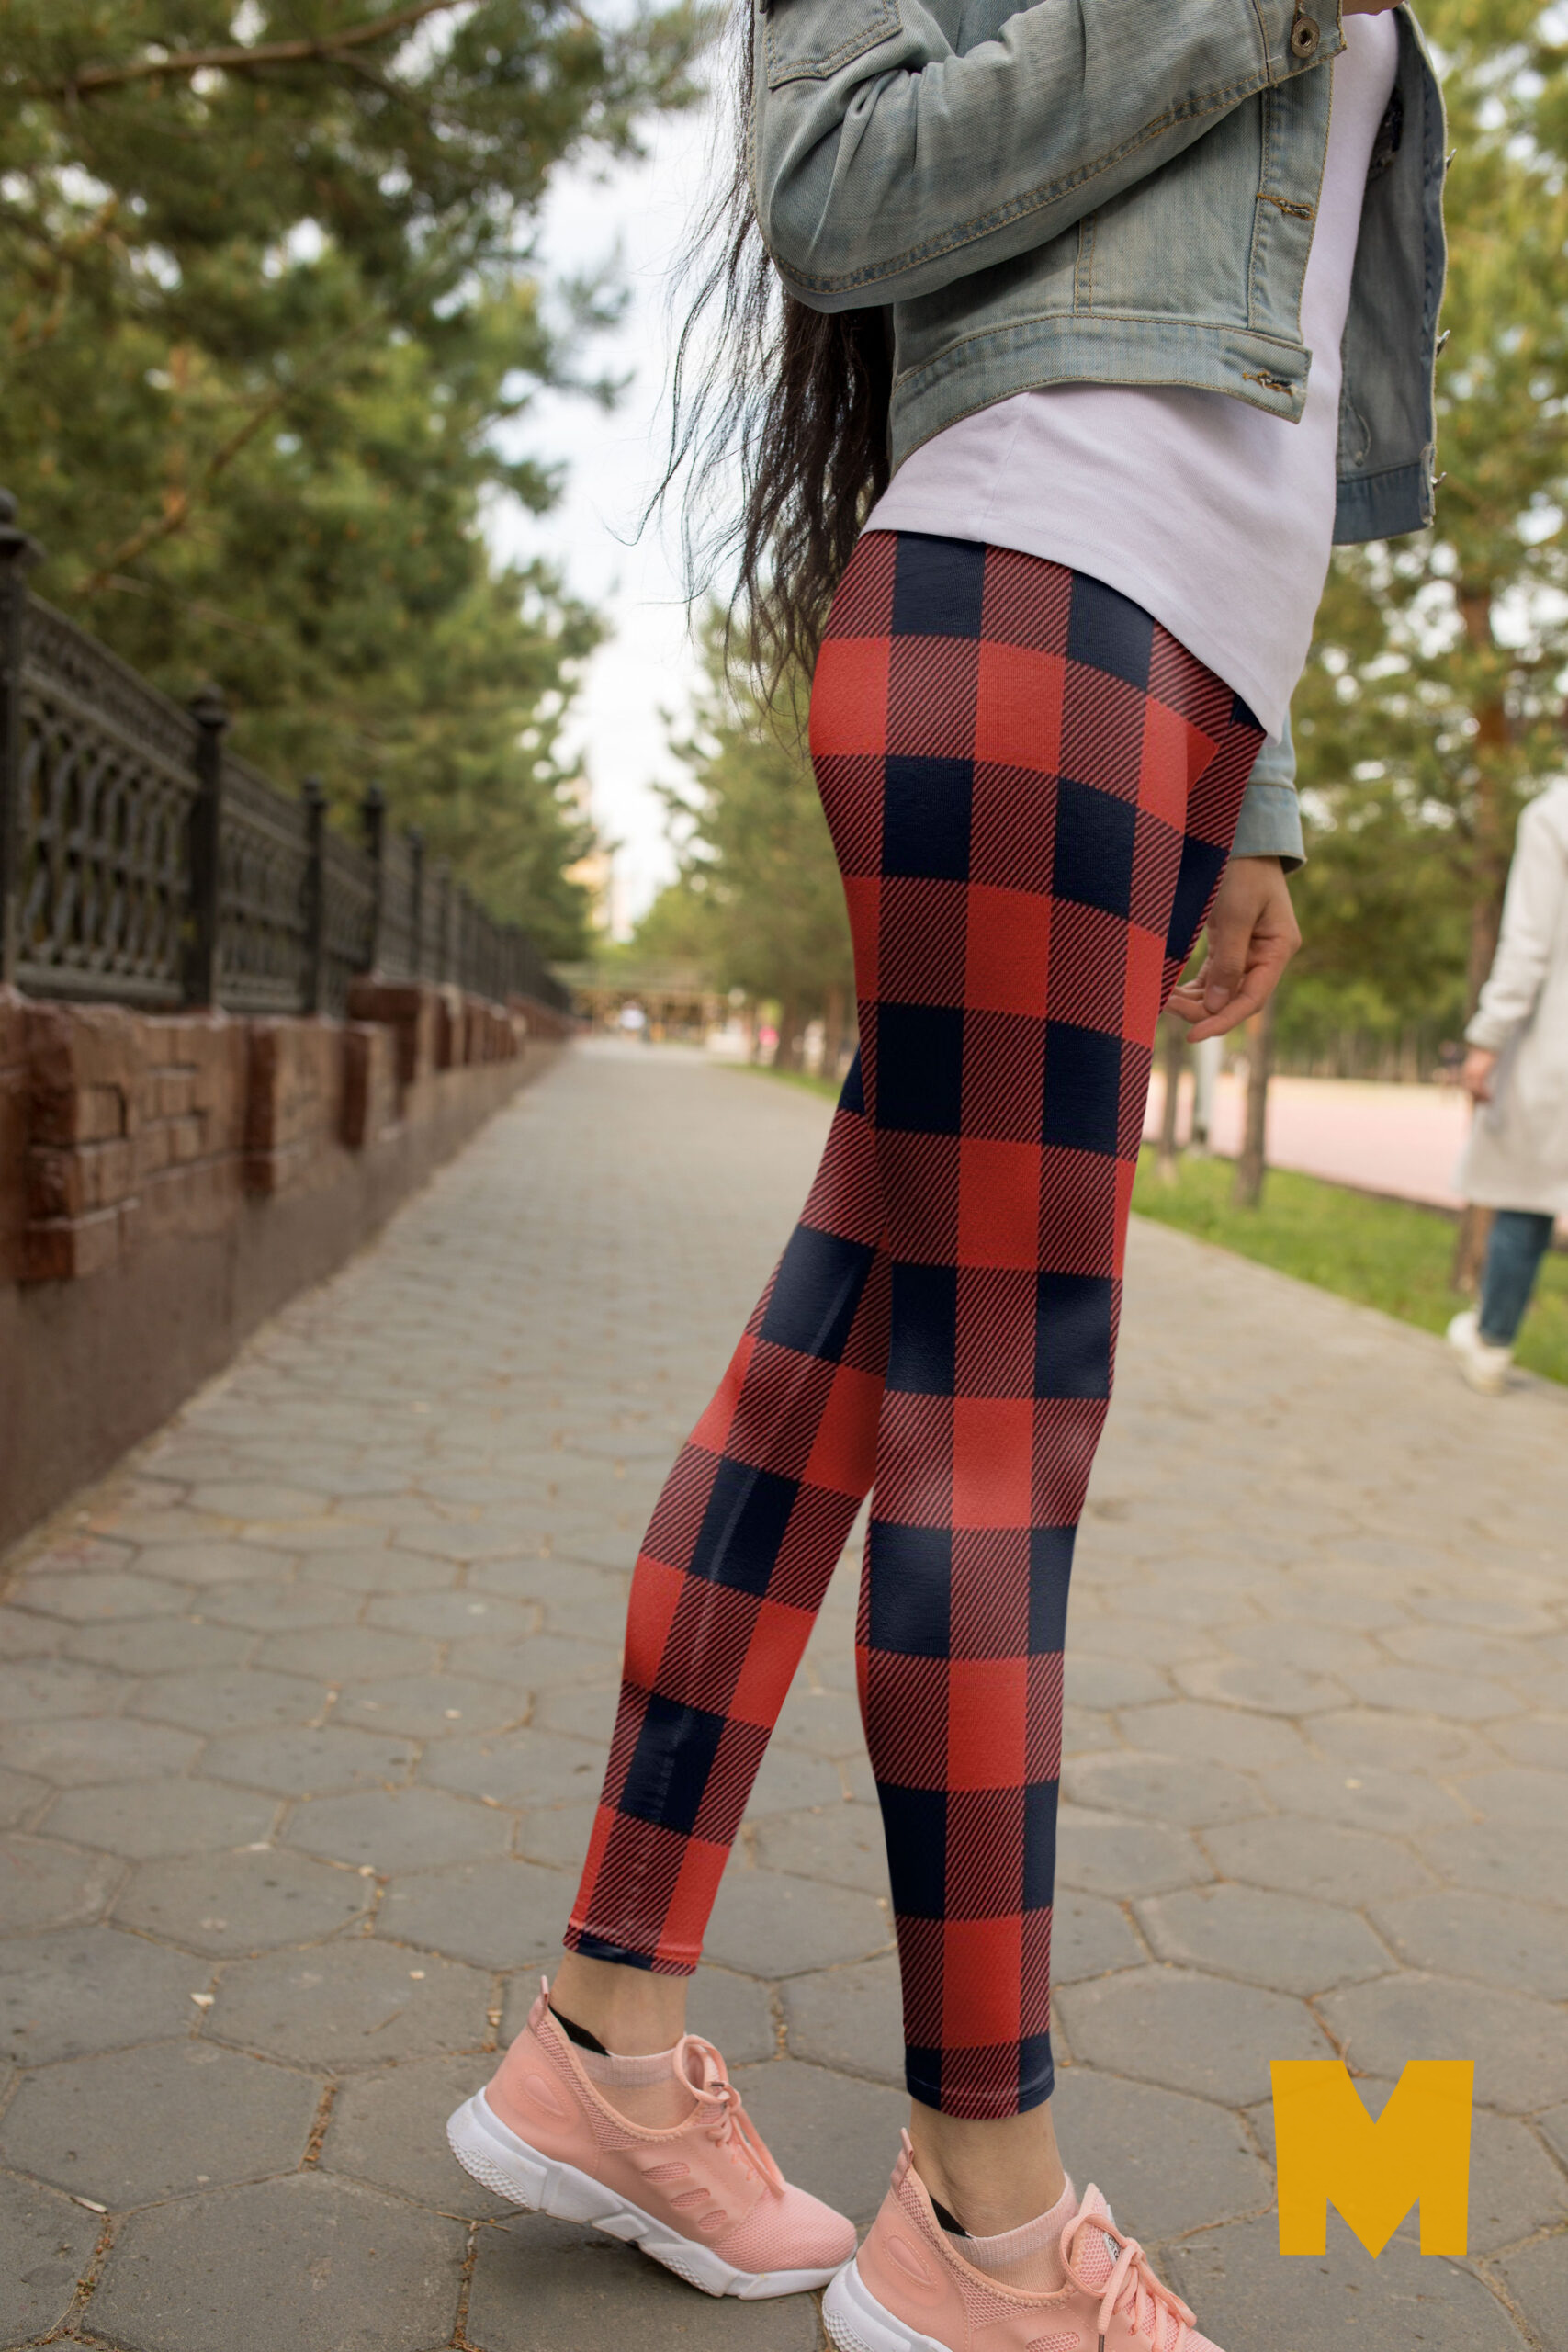 New Design Check Printed Leggings Mockup